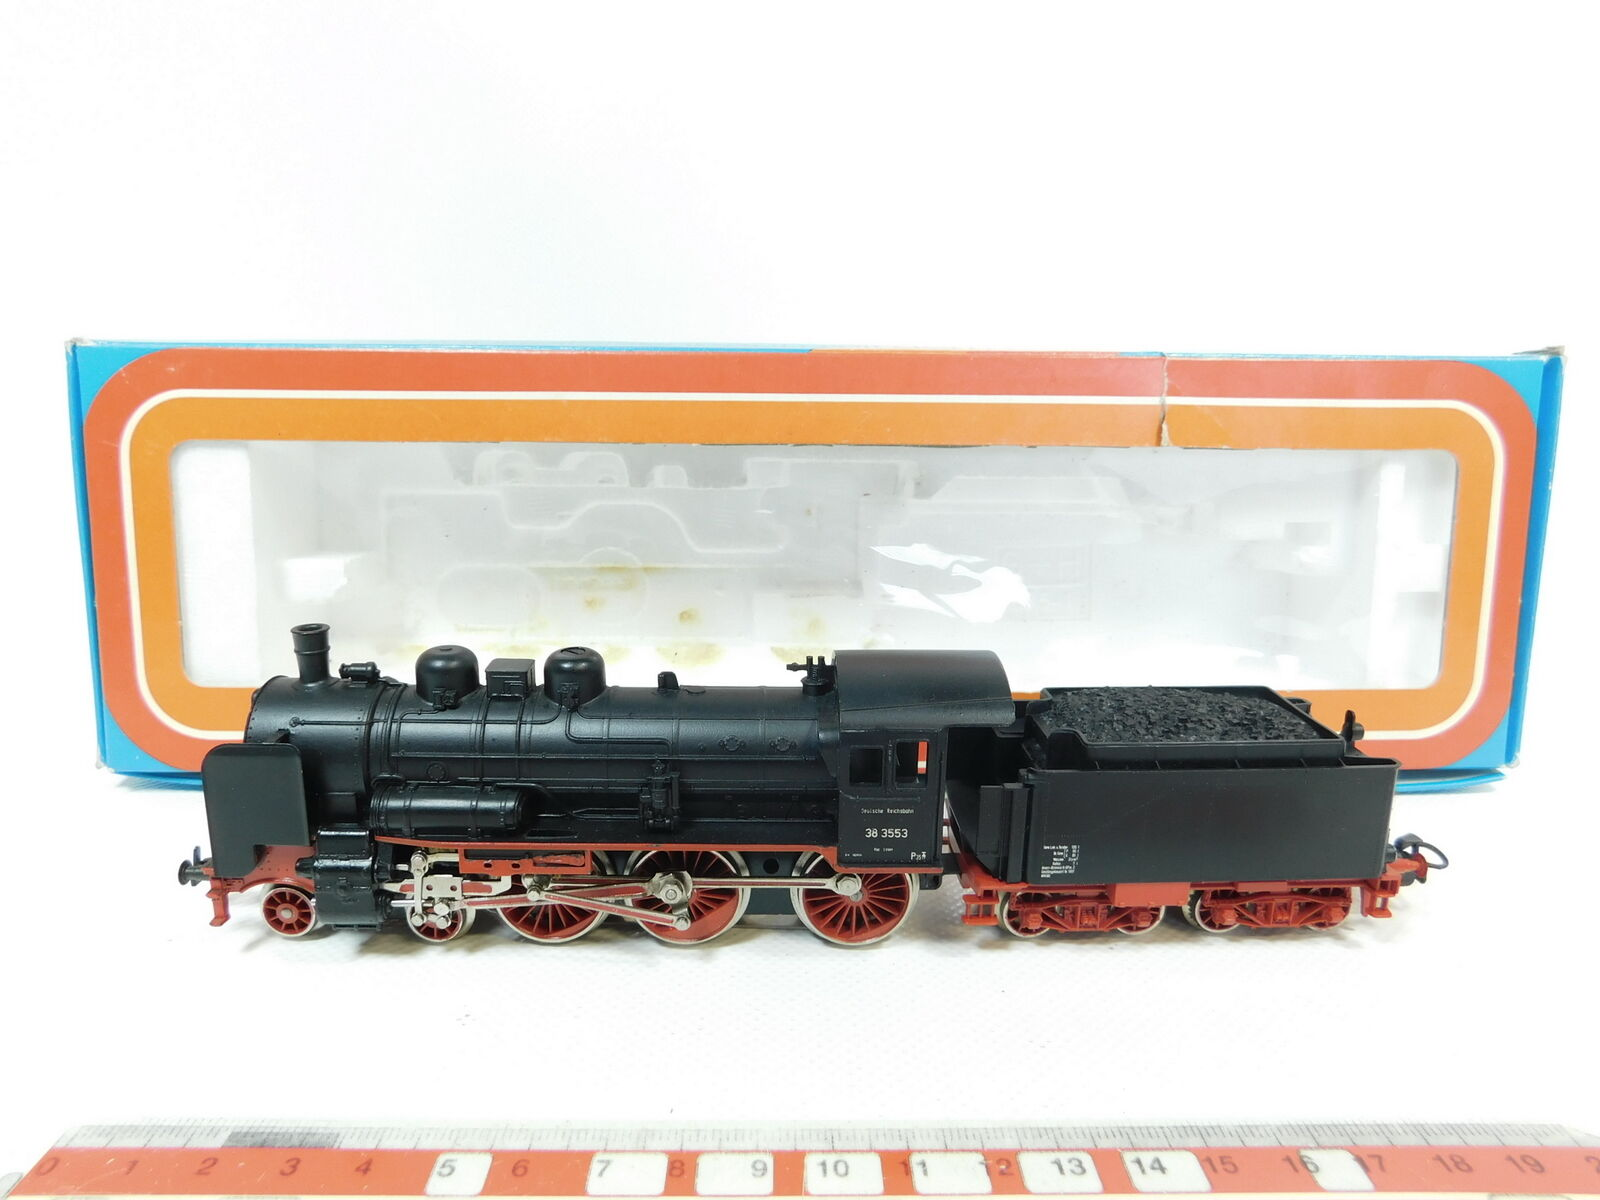 Bg48-1MÄRKLIN H0 AC 3099 Steam Locomotive   Steam Locomotive 38 3553 DRG, NIP